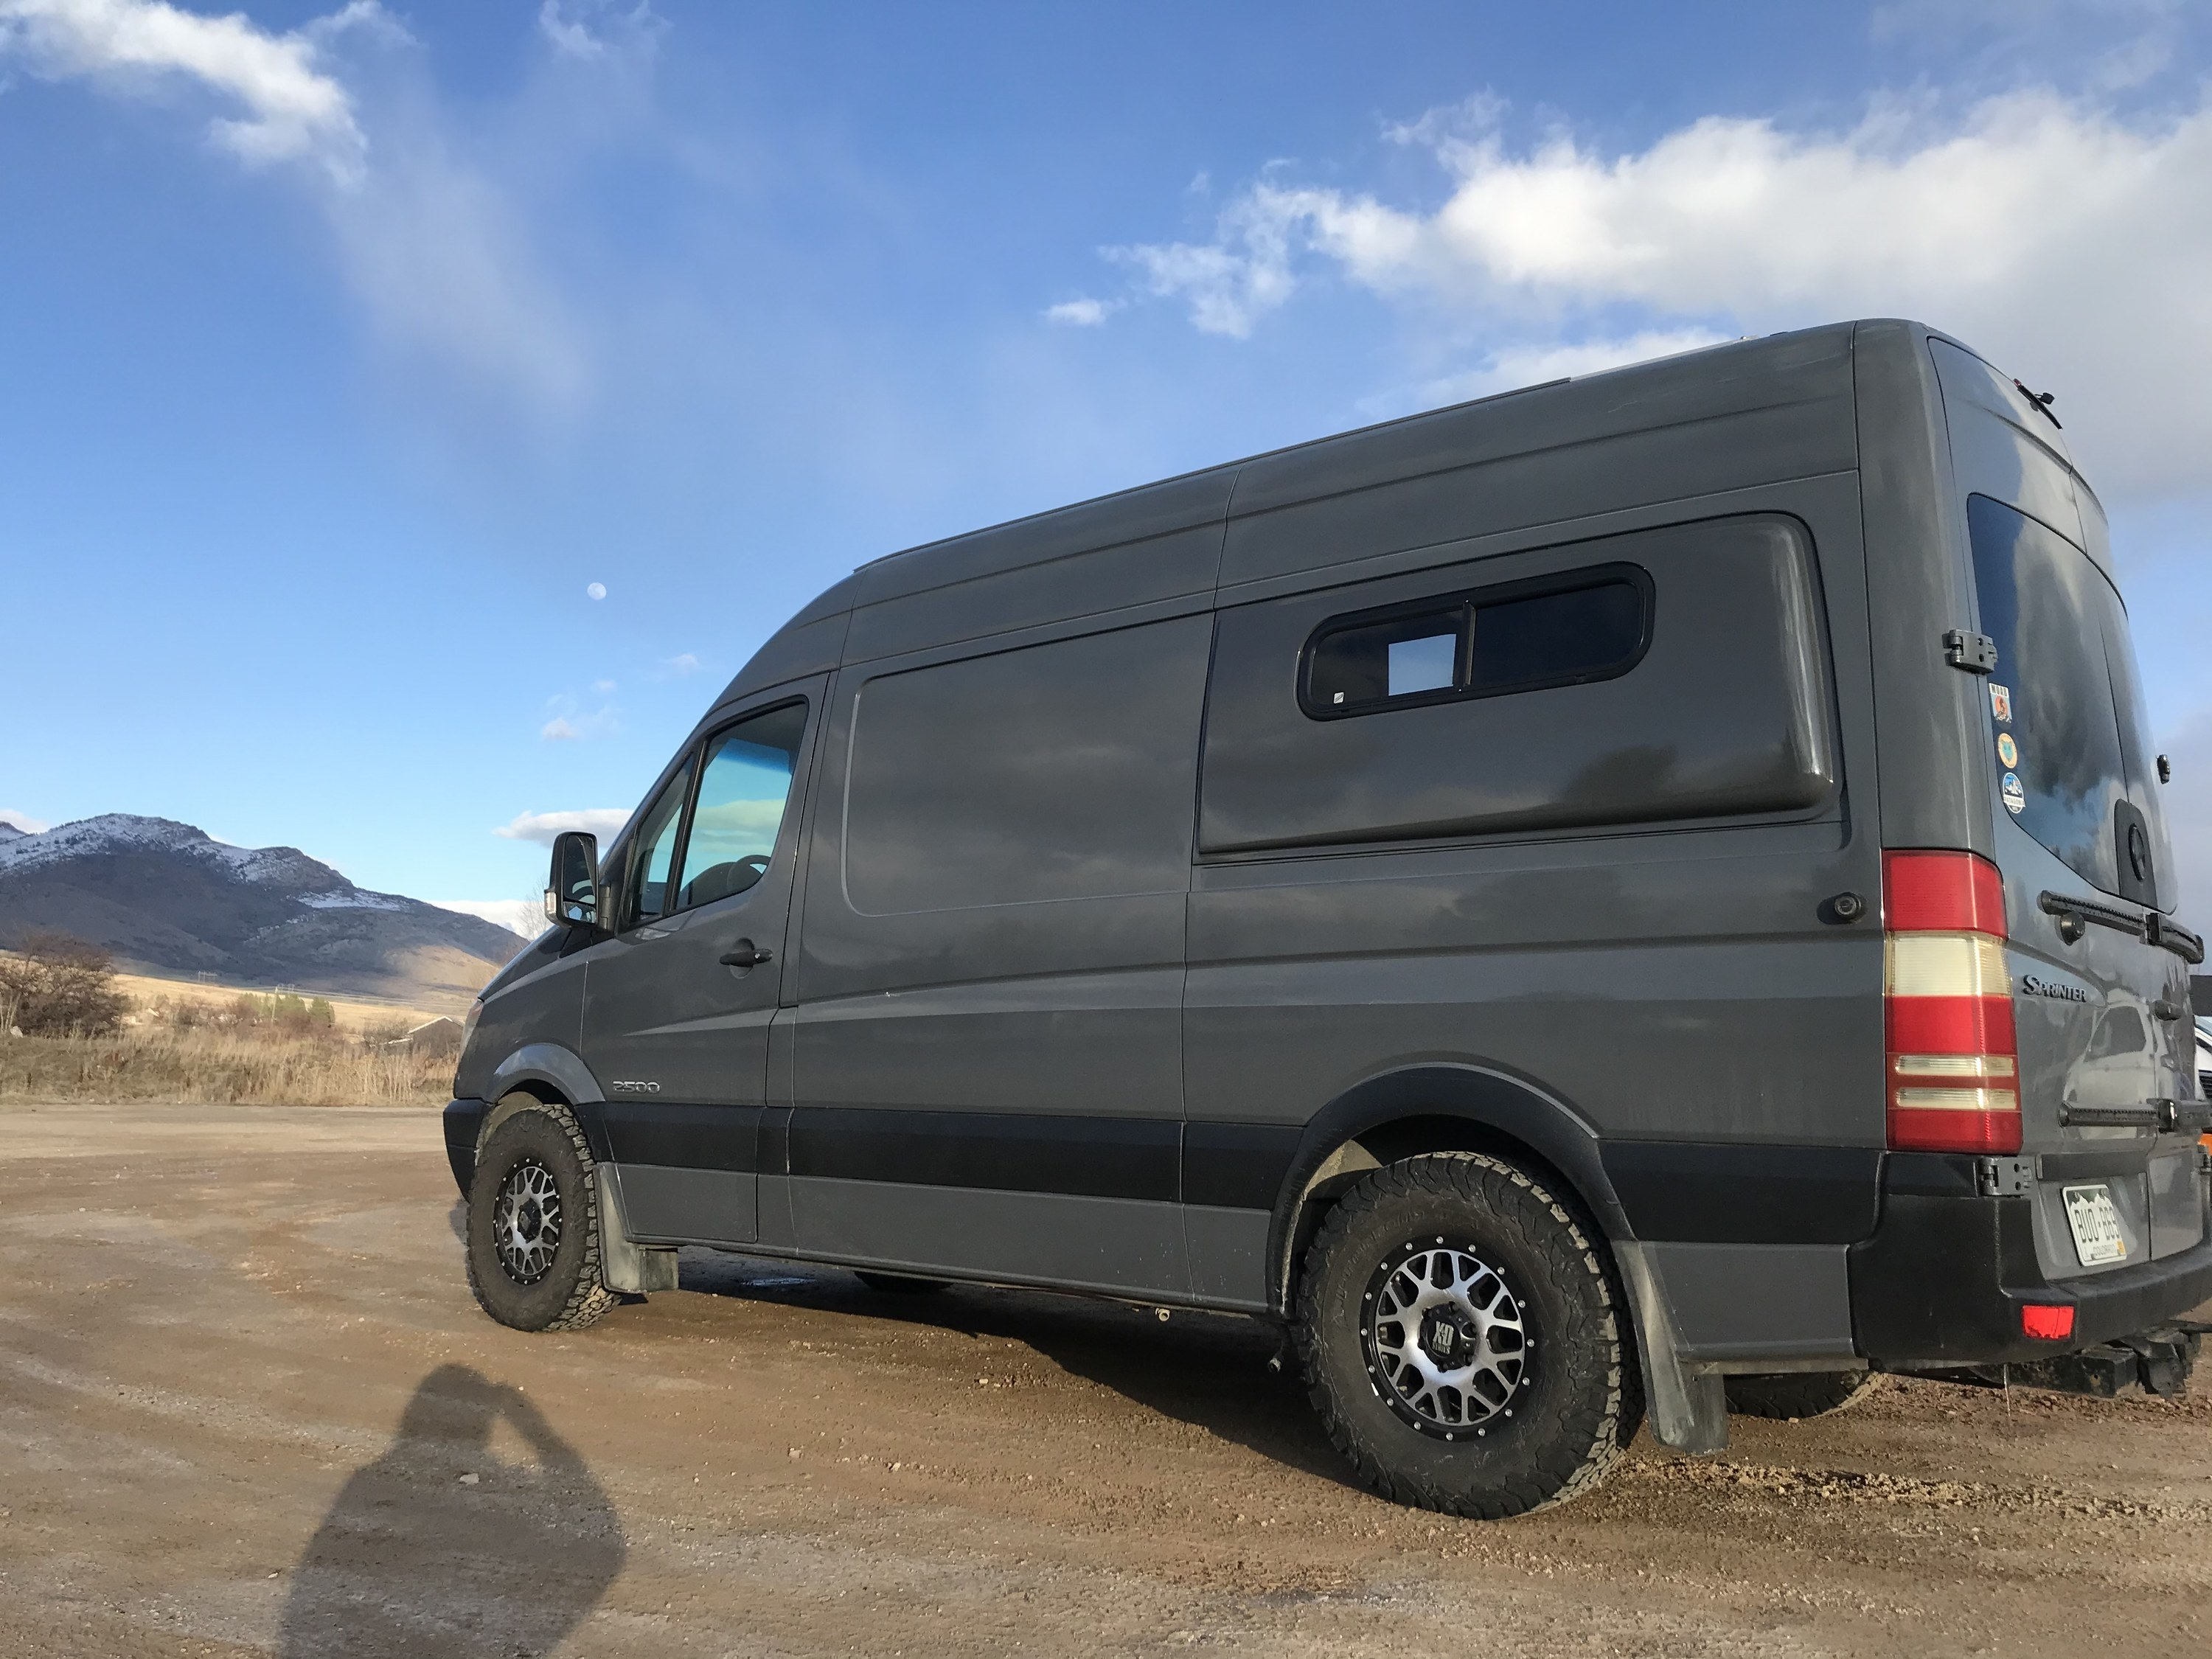 Van parked in a sunny parking lot